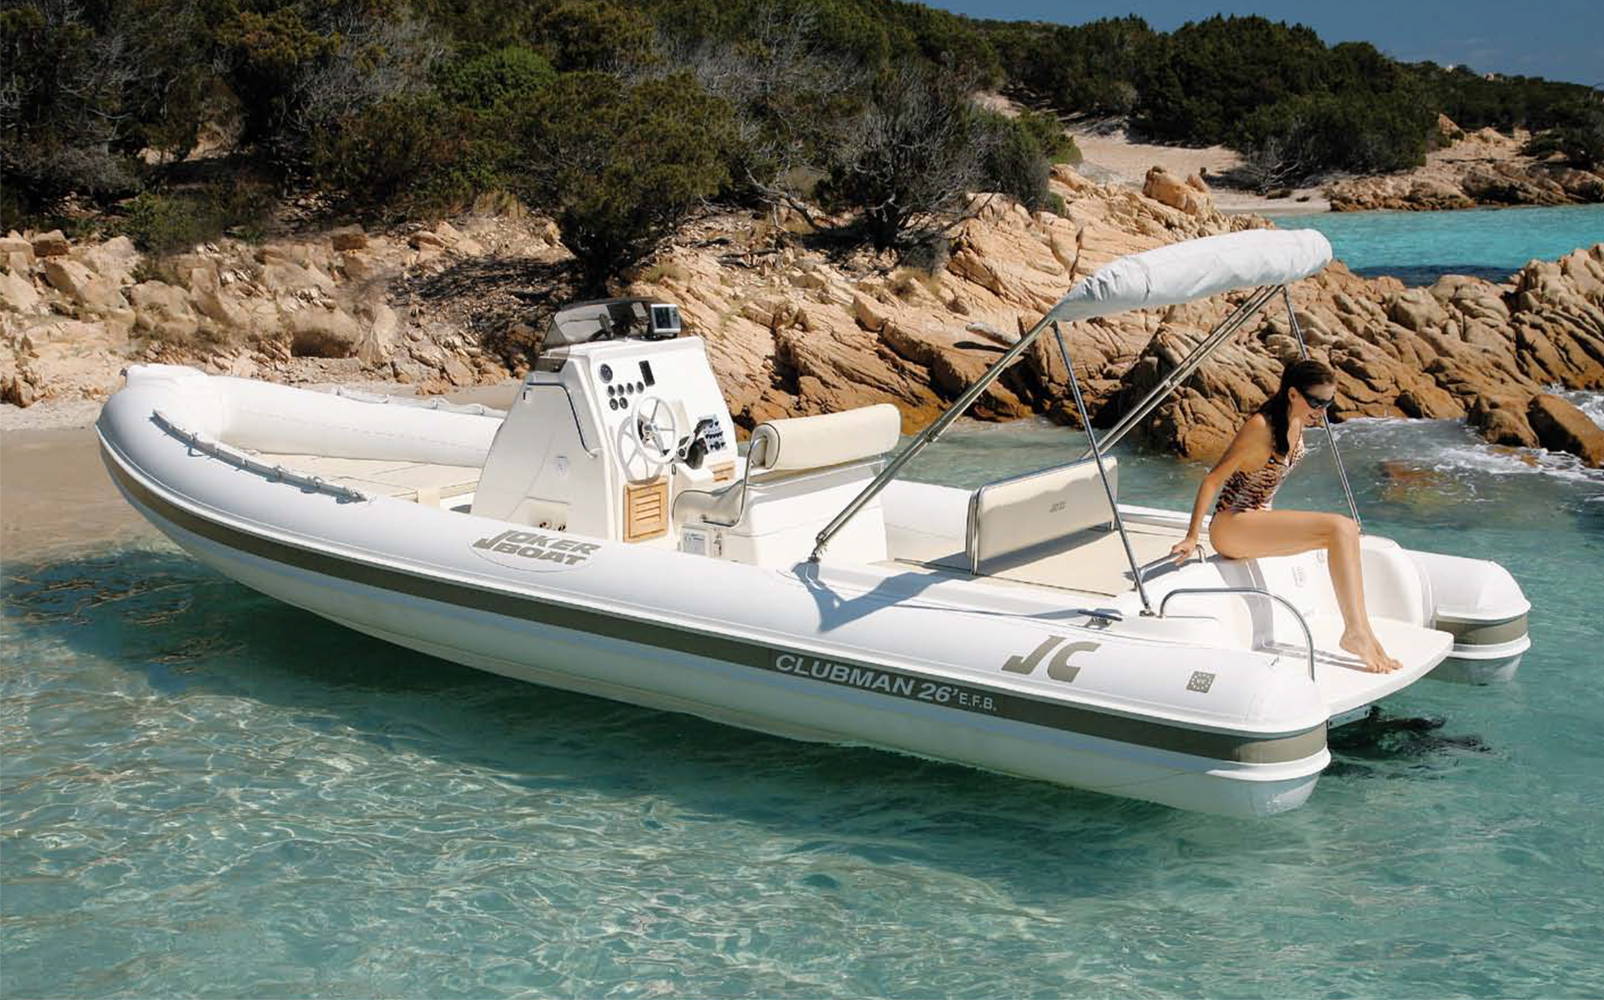 Jokerboat Clubman 26′ EFB